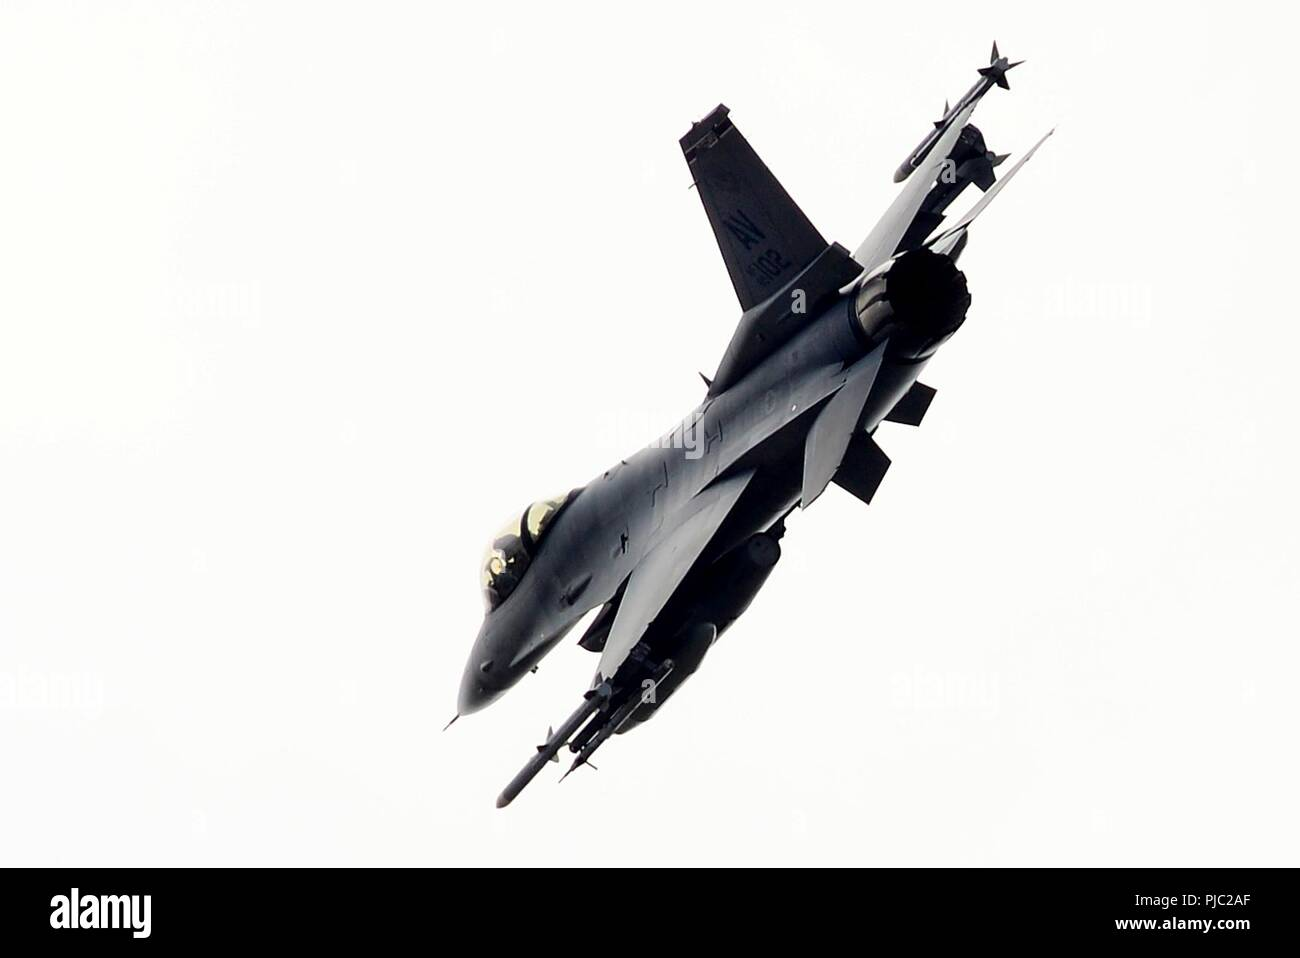 An F-16C Fighting Falcon from the 31st Fighter Wing, 510th Fighter Squadron, Aviano Air Base, Italy flies over Royal Air Force Lakenheath, England July 20, 2018. The 510th FS are participating in a bilateral training event to enhance interoperability, maintain joint readiness and reassure our regional allies and partners. Stock Photo